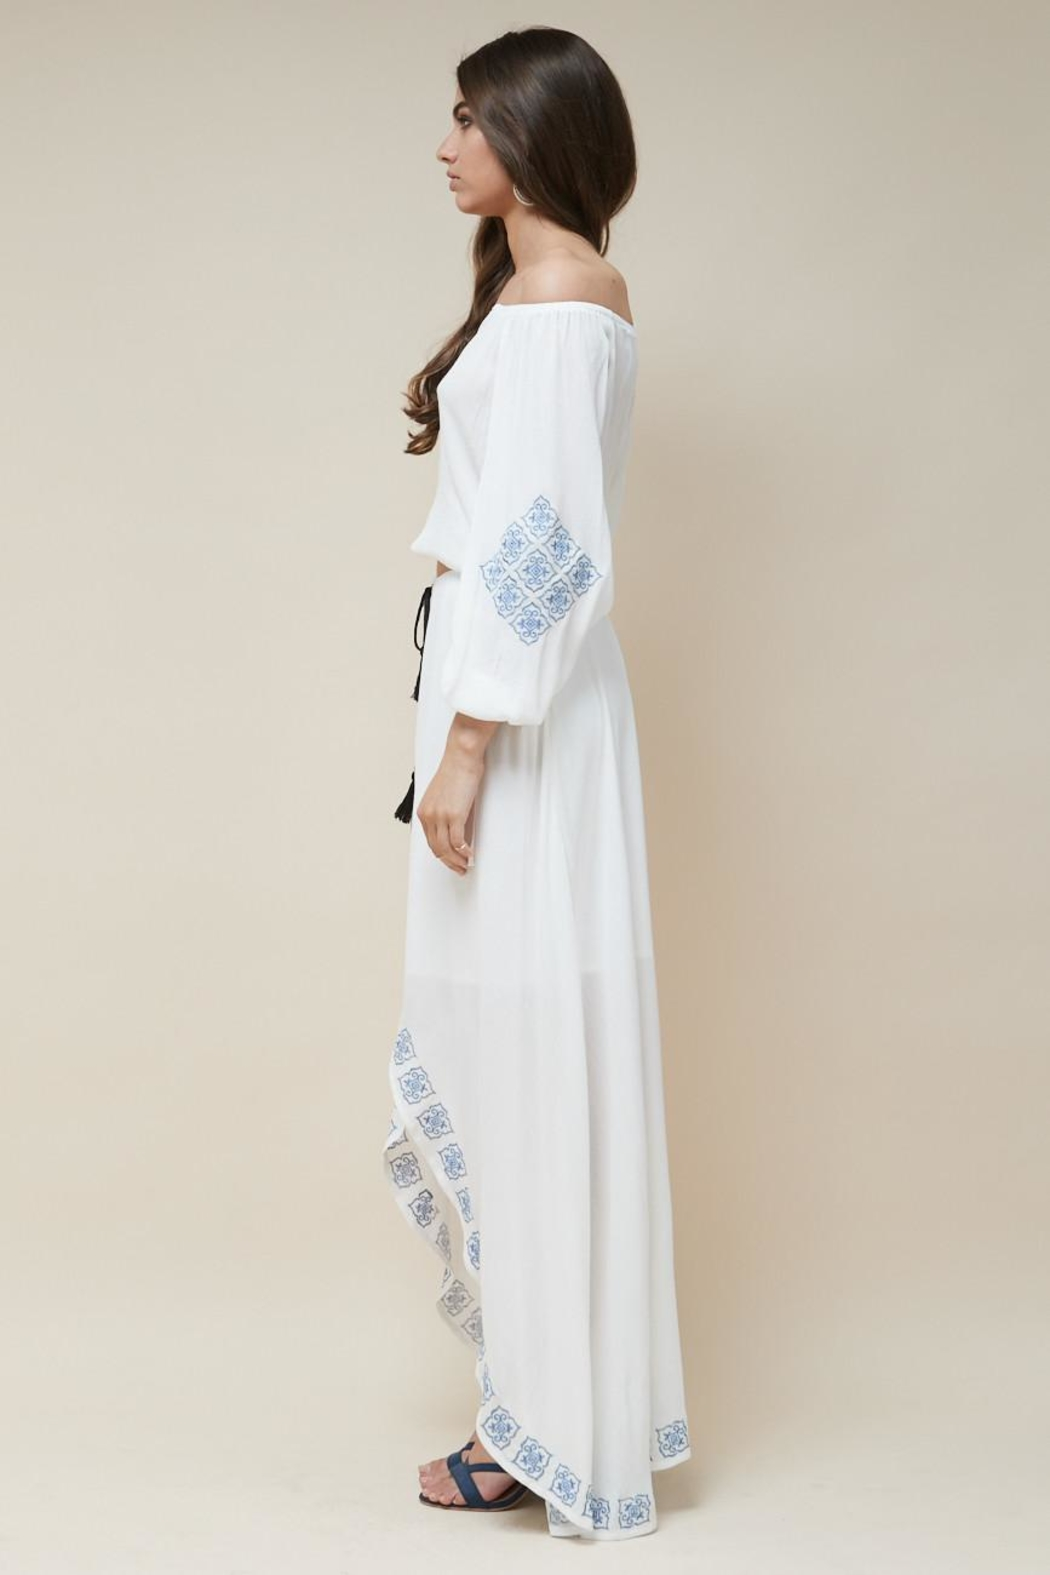 Morrisday The Label Mykonos Embroidered Skirt - Front Cropped Image